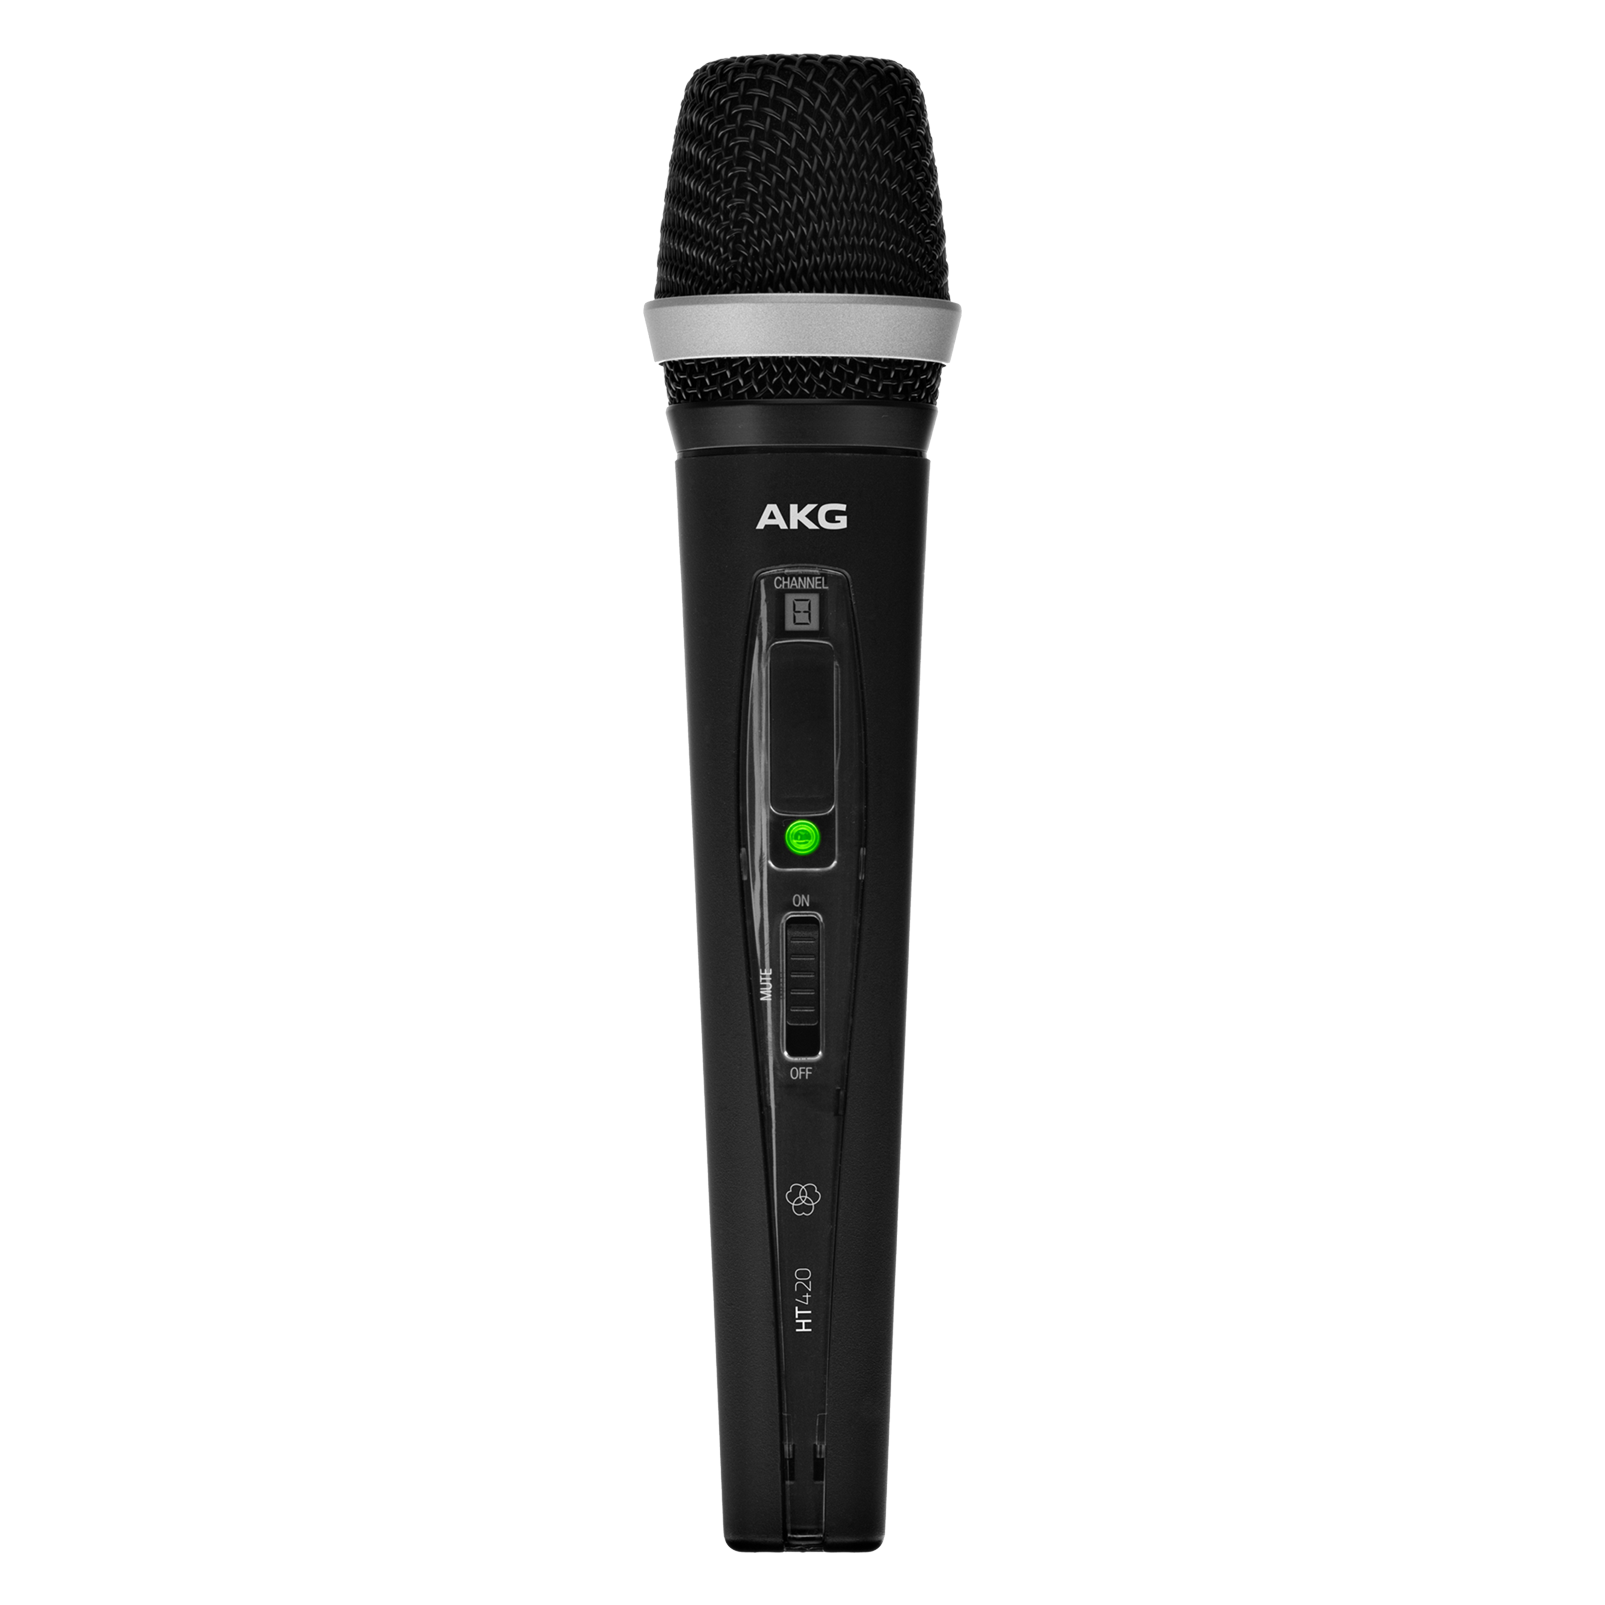 HT420 BandK - Black - Professional wireless handheld transmitter - Hero